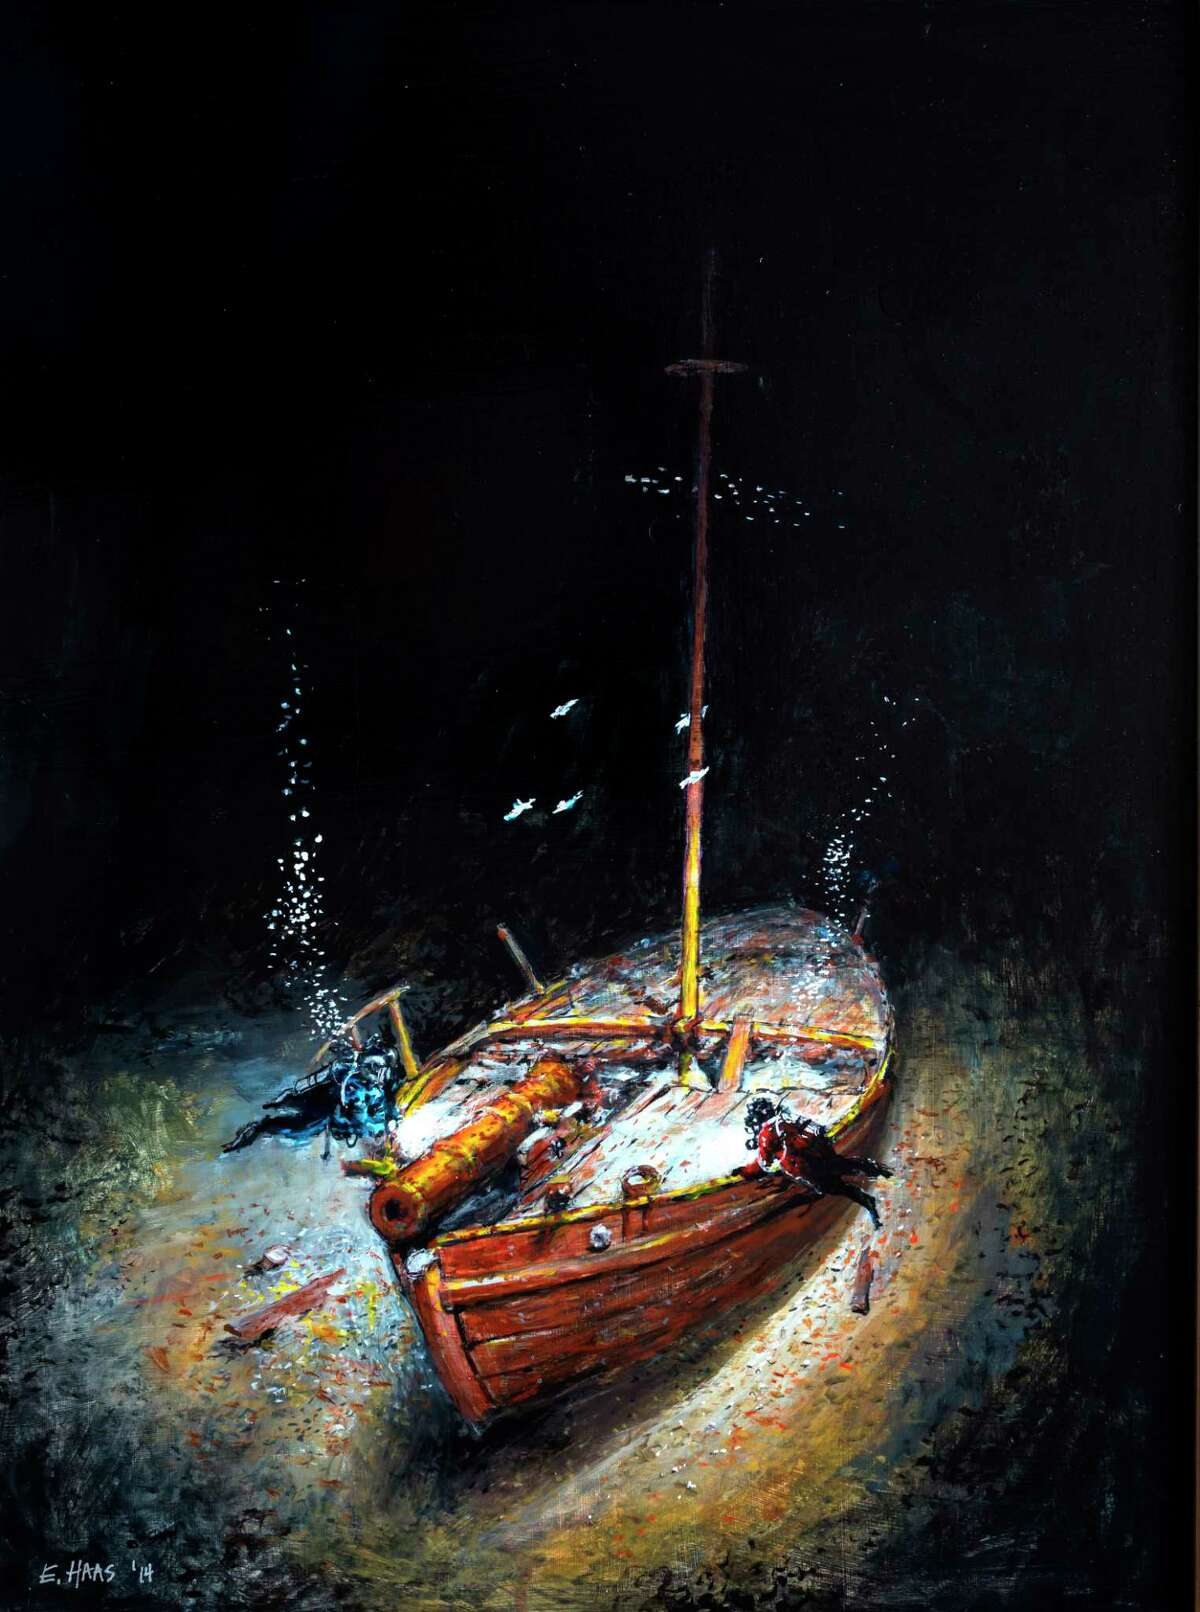 This image of a painting by Ernie Haas provided by the Lake Champlain Maritime Museum shows an artist's rendition of divers hovering over the Revolutionary War gunboat